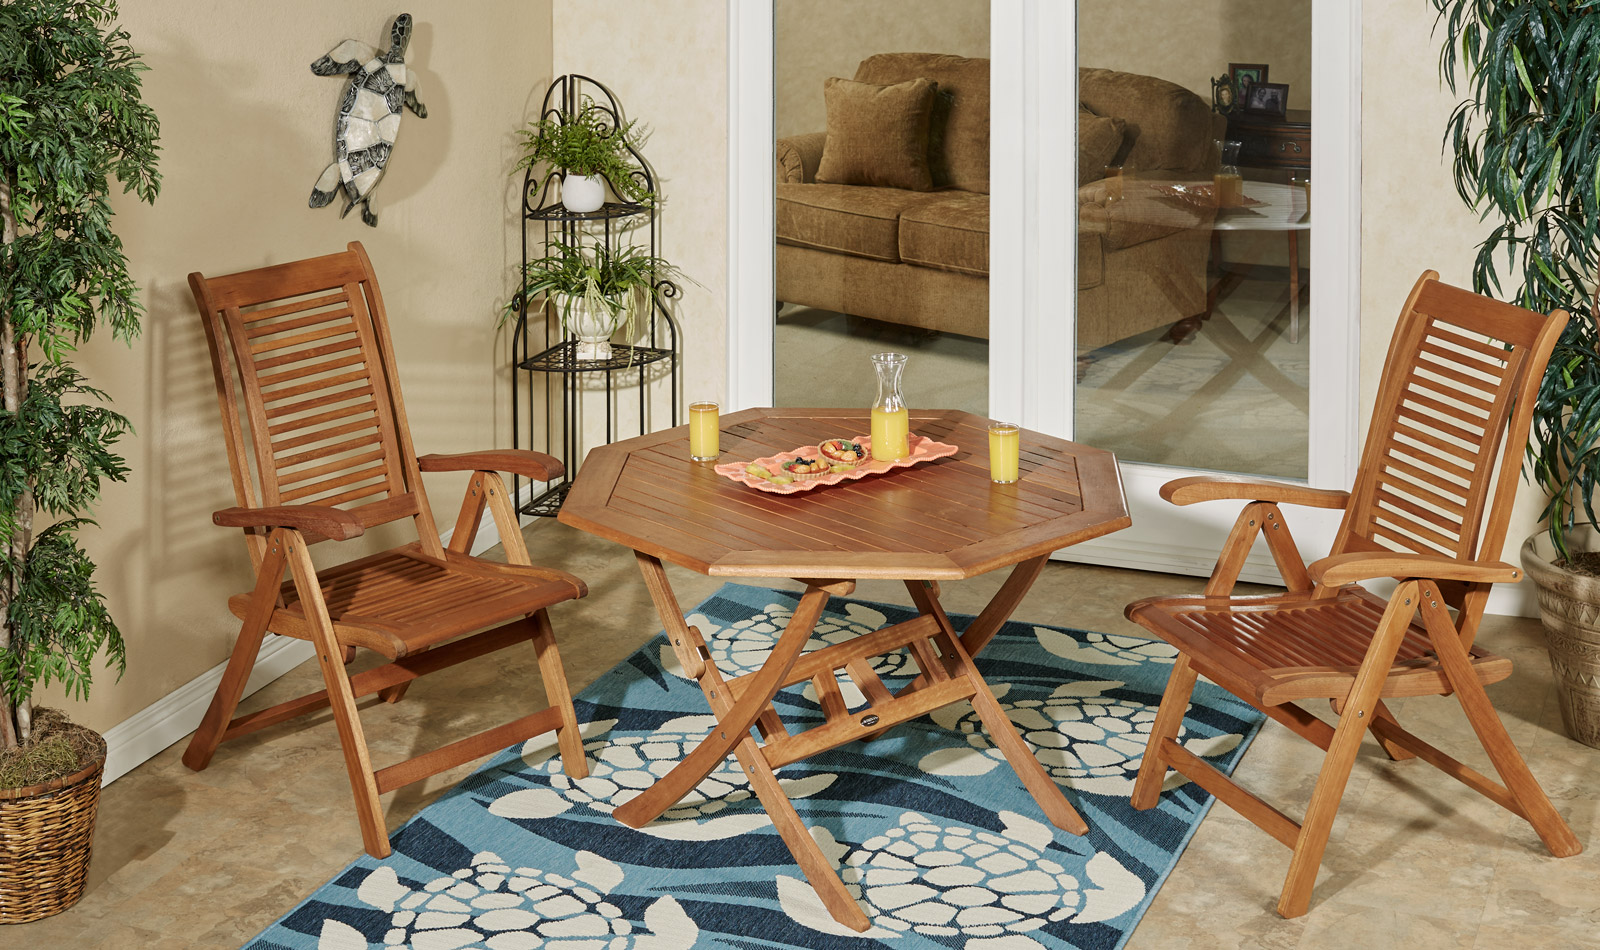 Get the Look - Sea Turtle Bay Patio